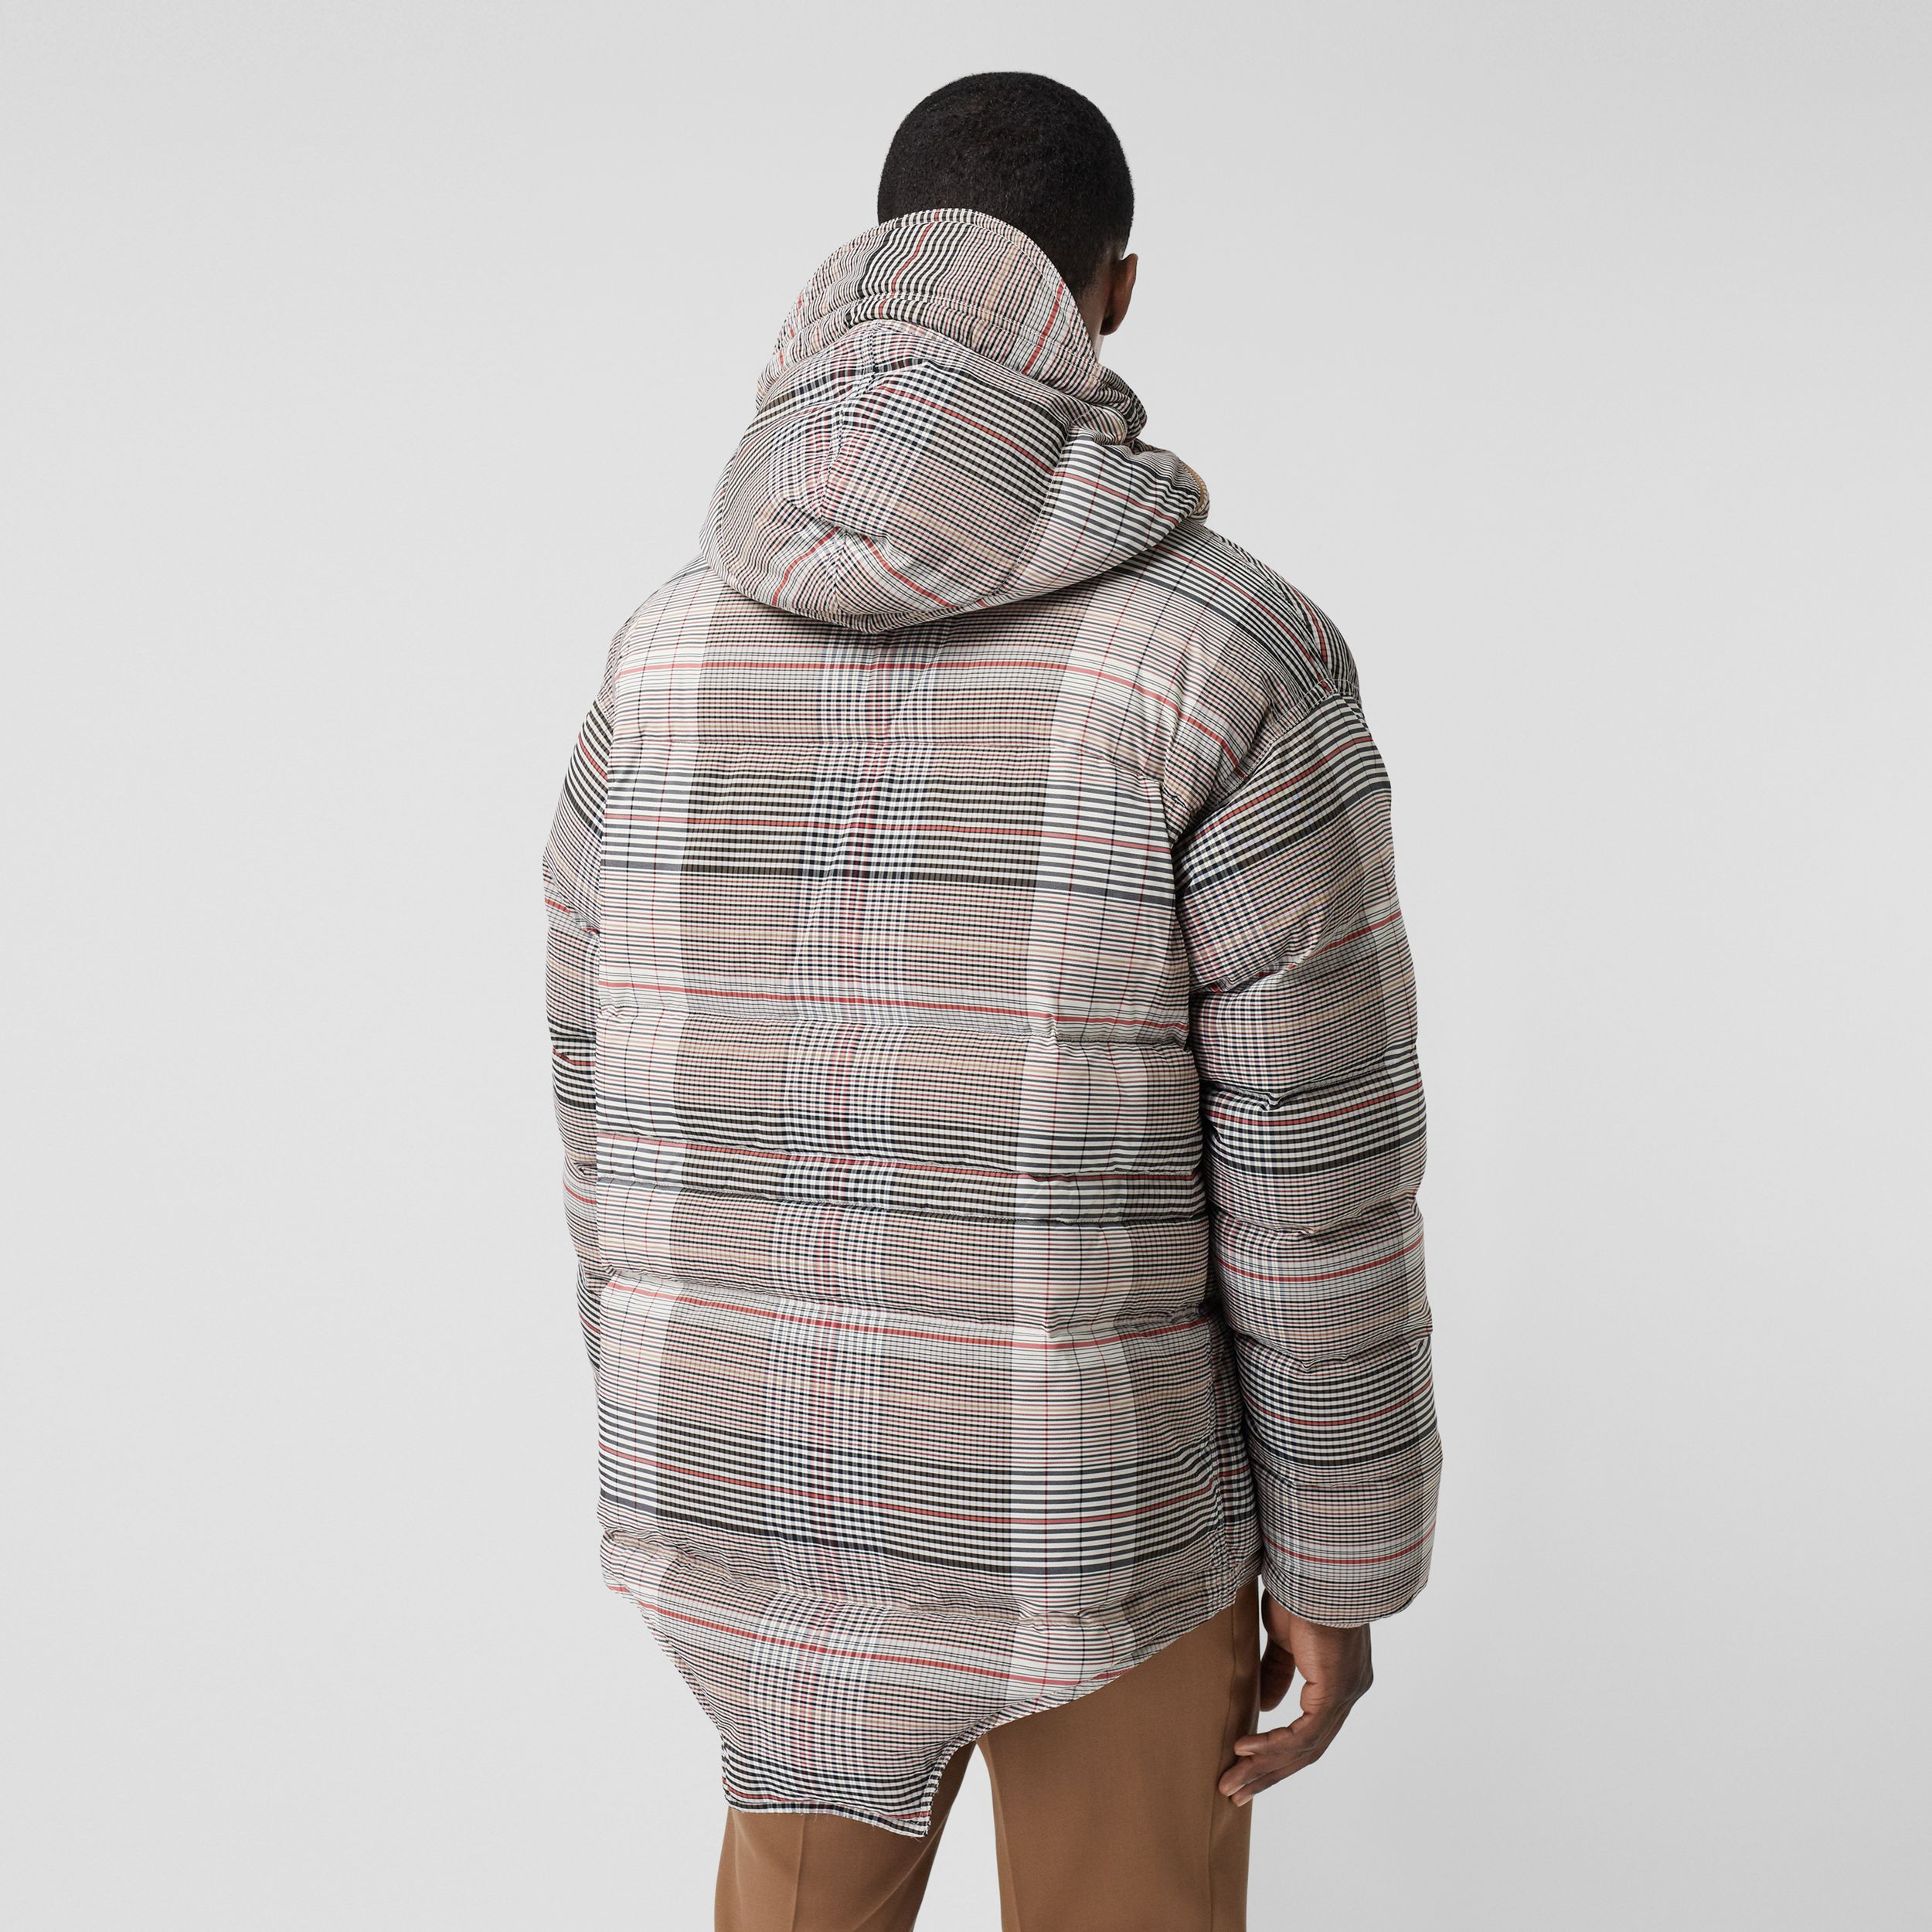 Cut-out Hem Check Nylon Twill Puffer Jacket in Beige - Men | Burberry - 3